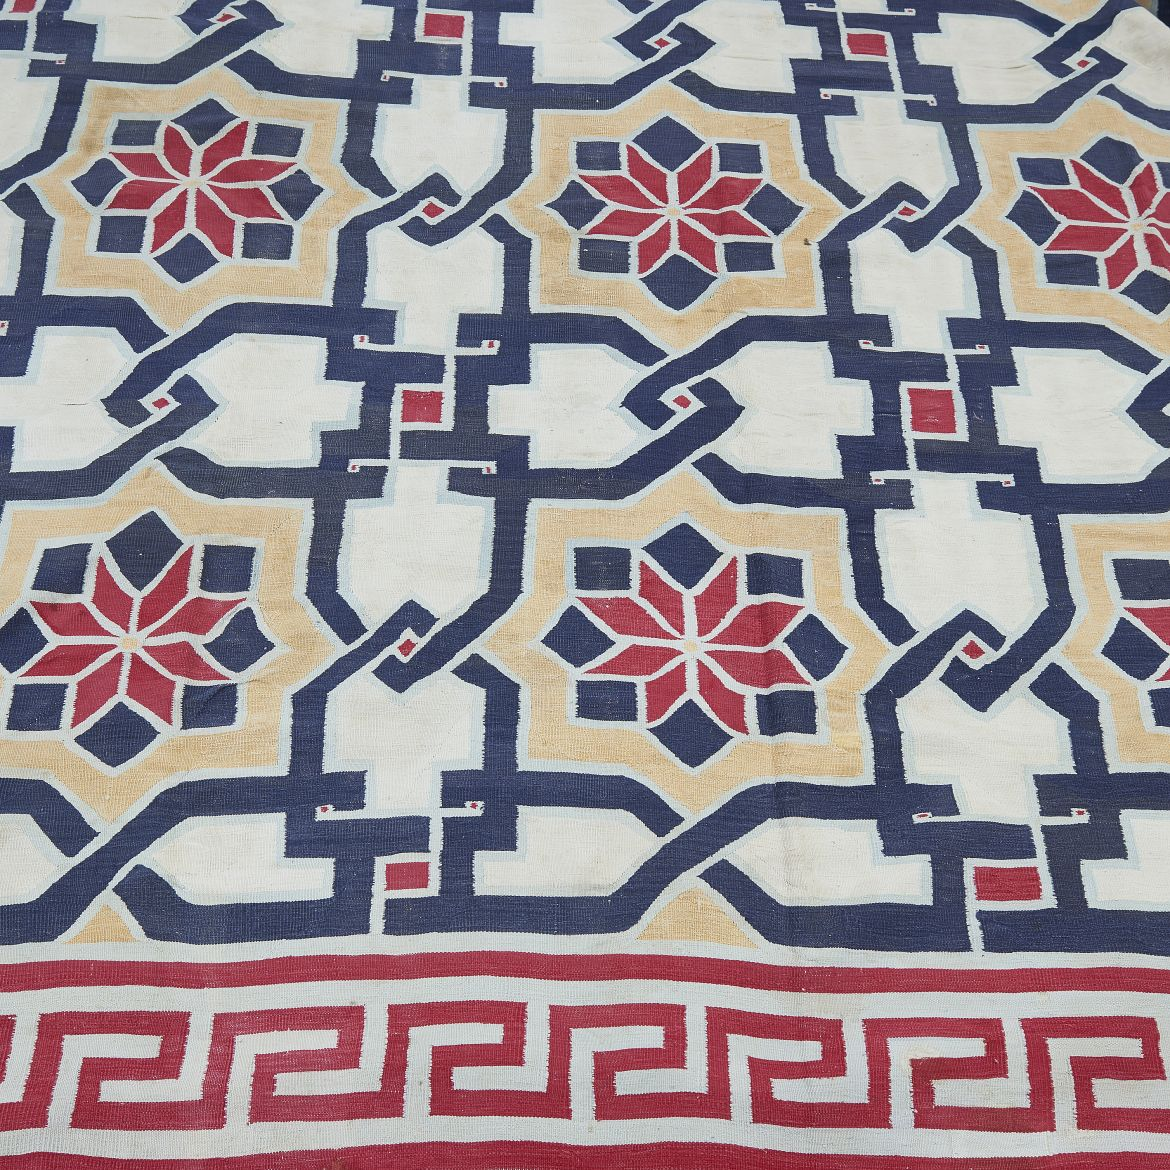 Geometric Flower Pattern Dhurrie With Greek Key Border